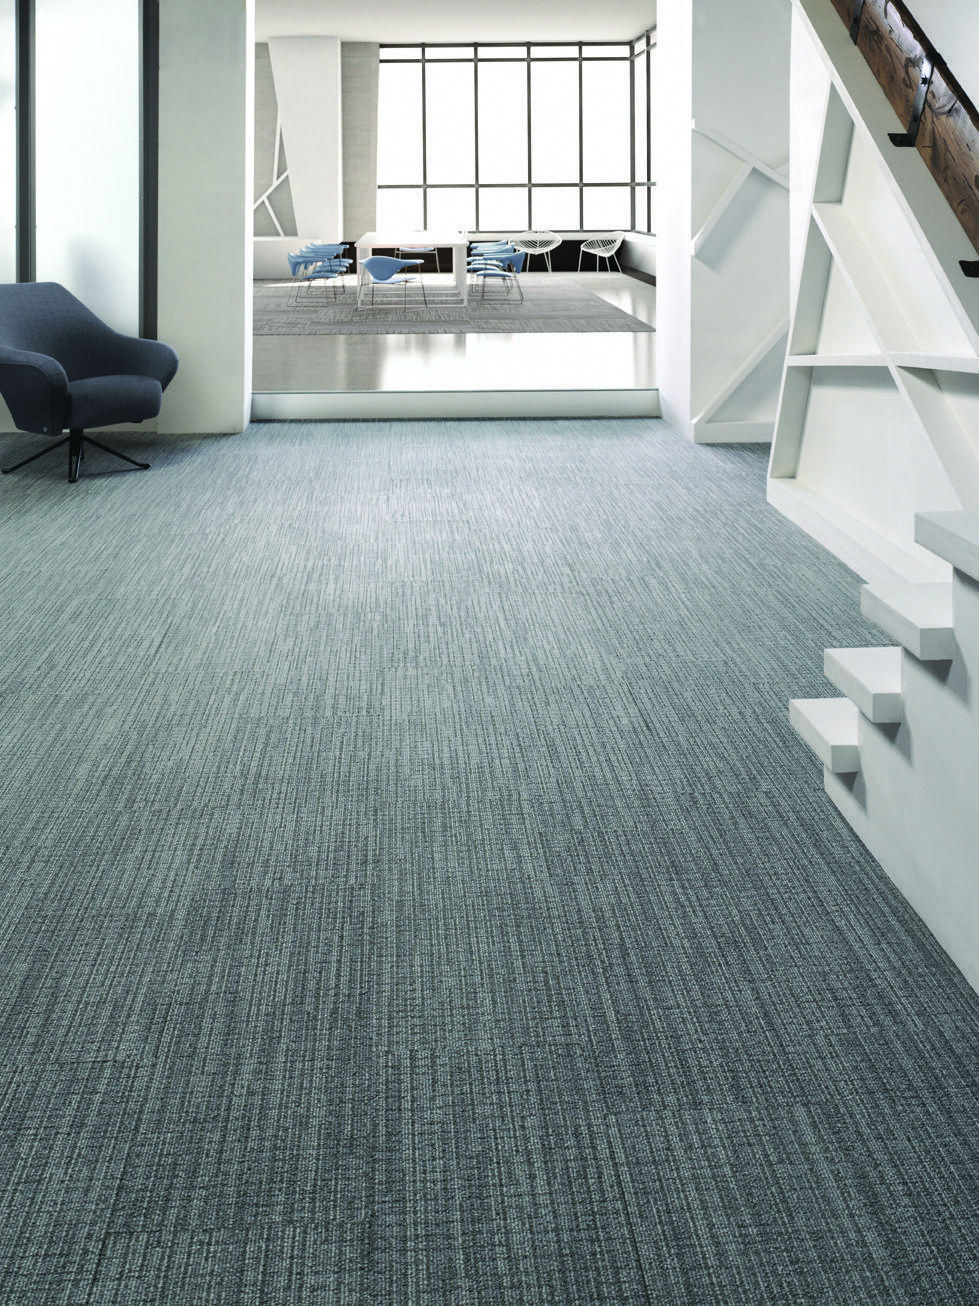 Best Carpet Runner Installation Near Me Commercial Carpet Tiles 400 x 300